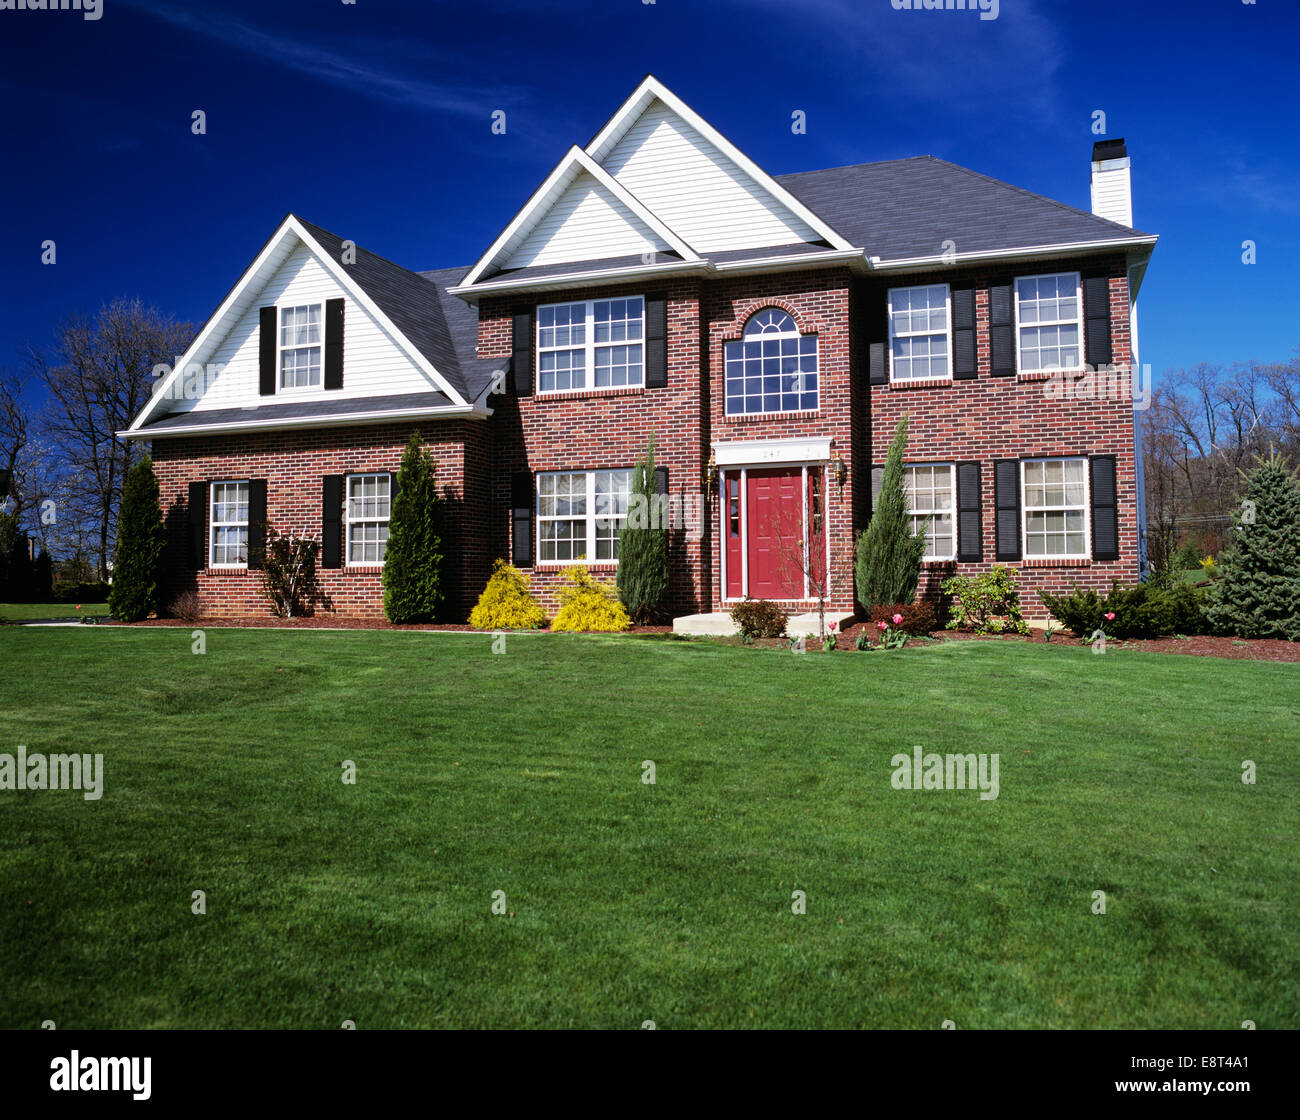 Red front door on brick house - Stock Photo Two Story Brick House With Landscaped Lawn And Red Front Door